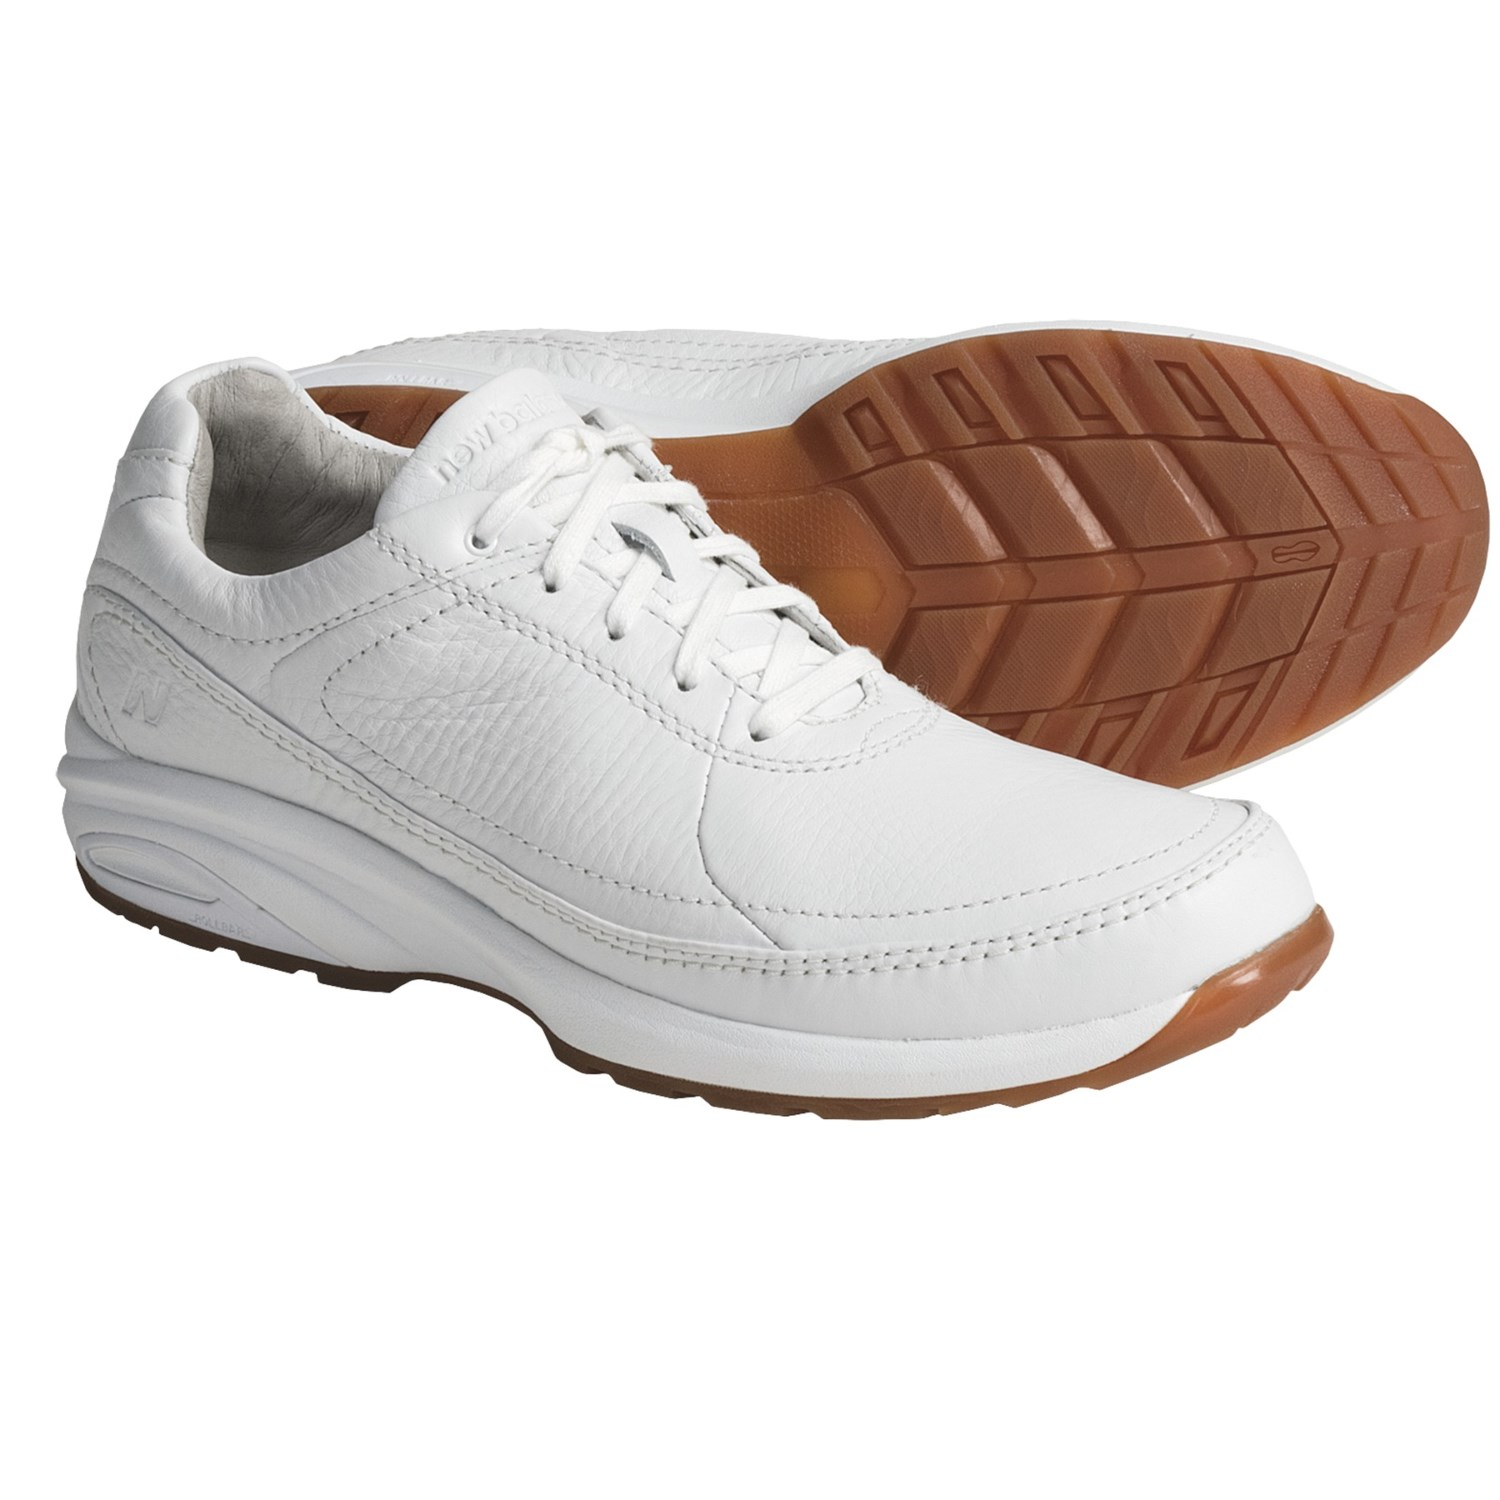 New Balance 950 Walking Shoes - Leather (For Men) in White